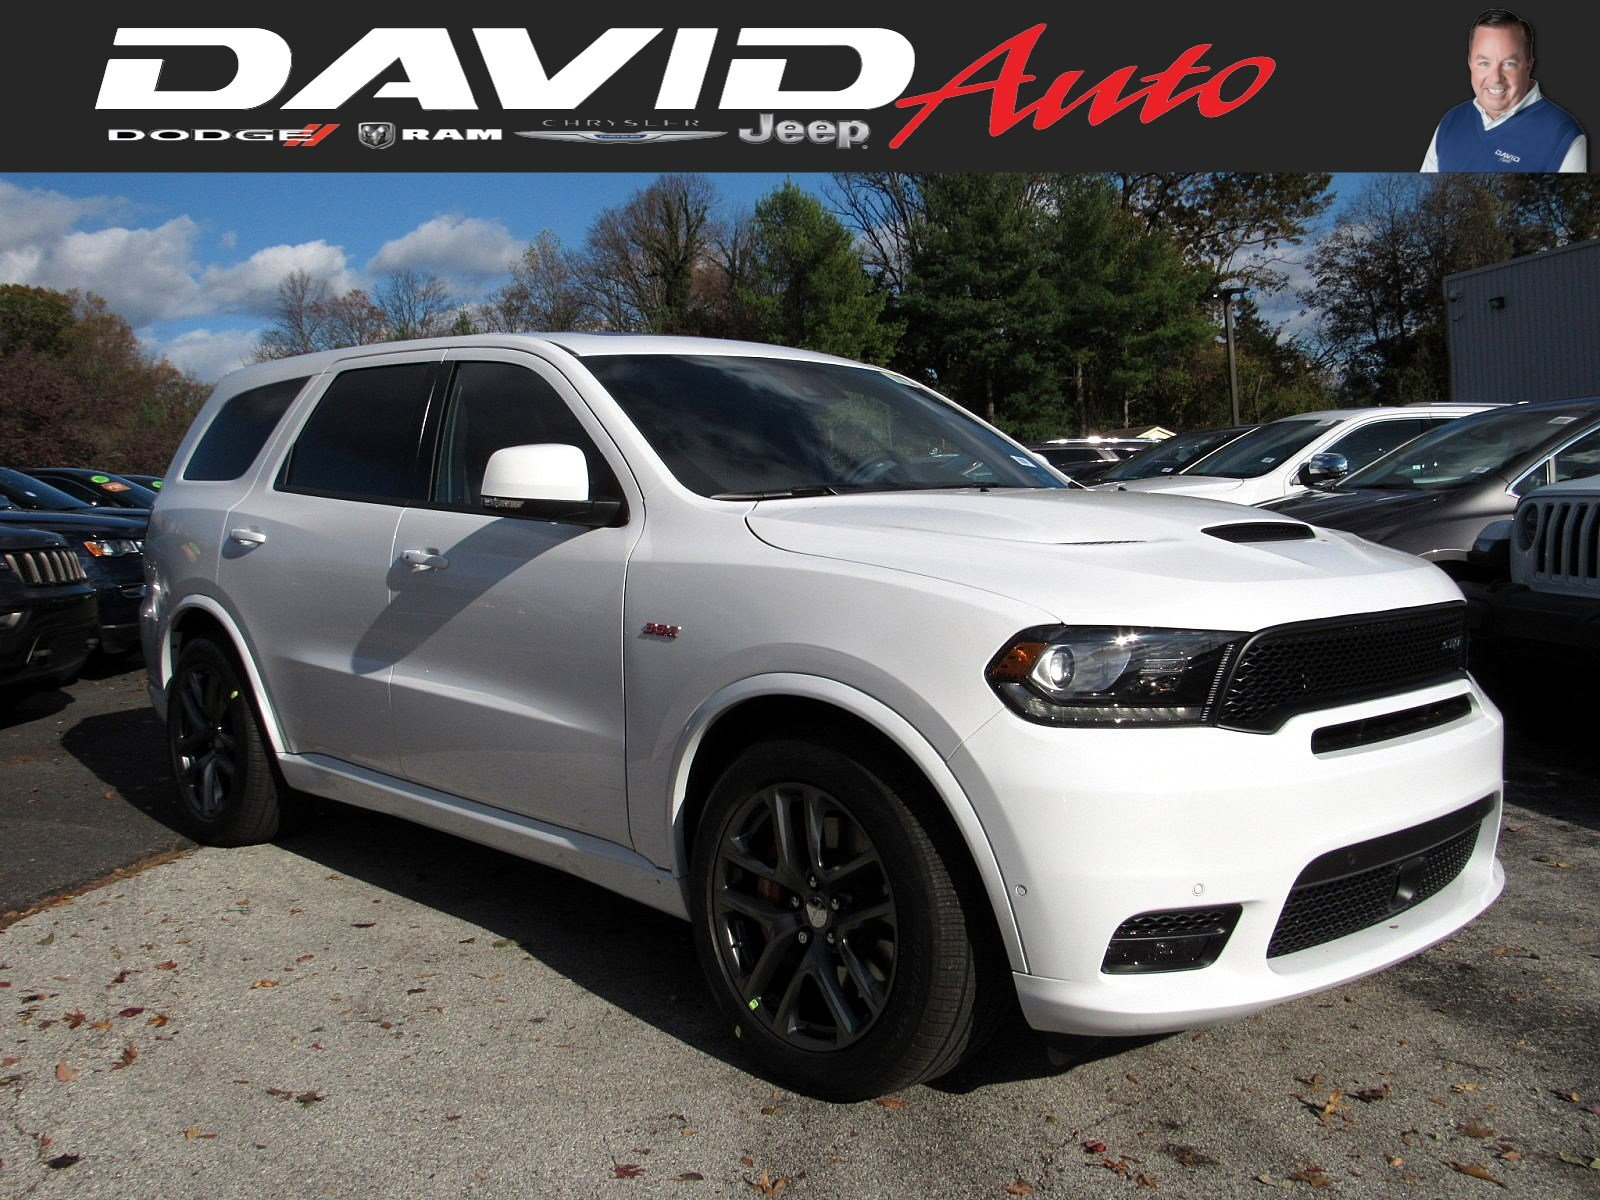 New 2020 Dodge Durango Srt Awd